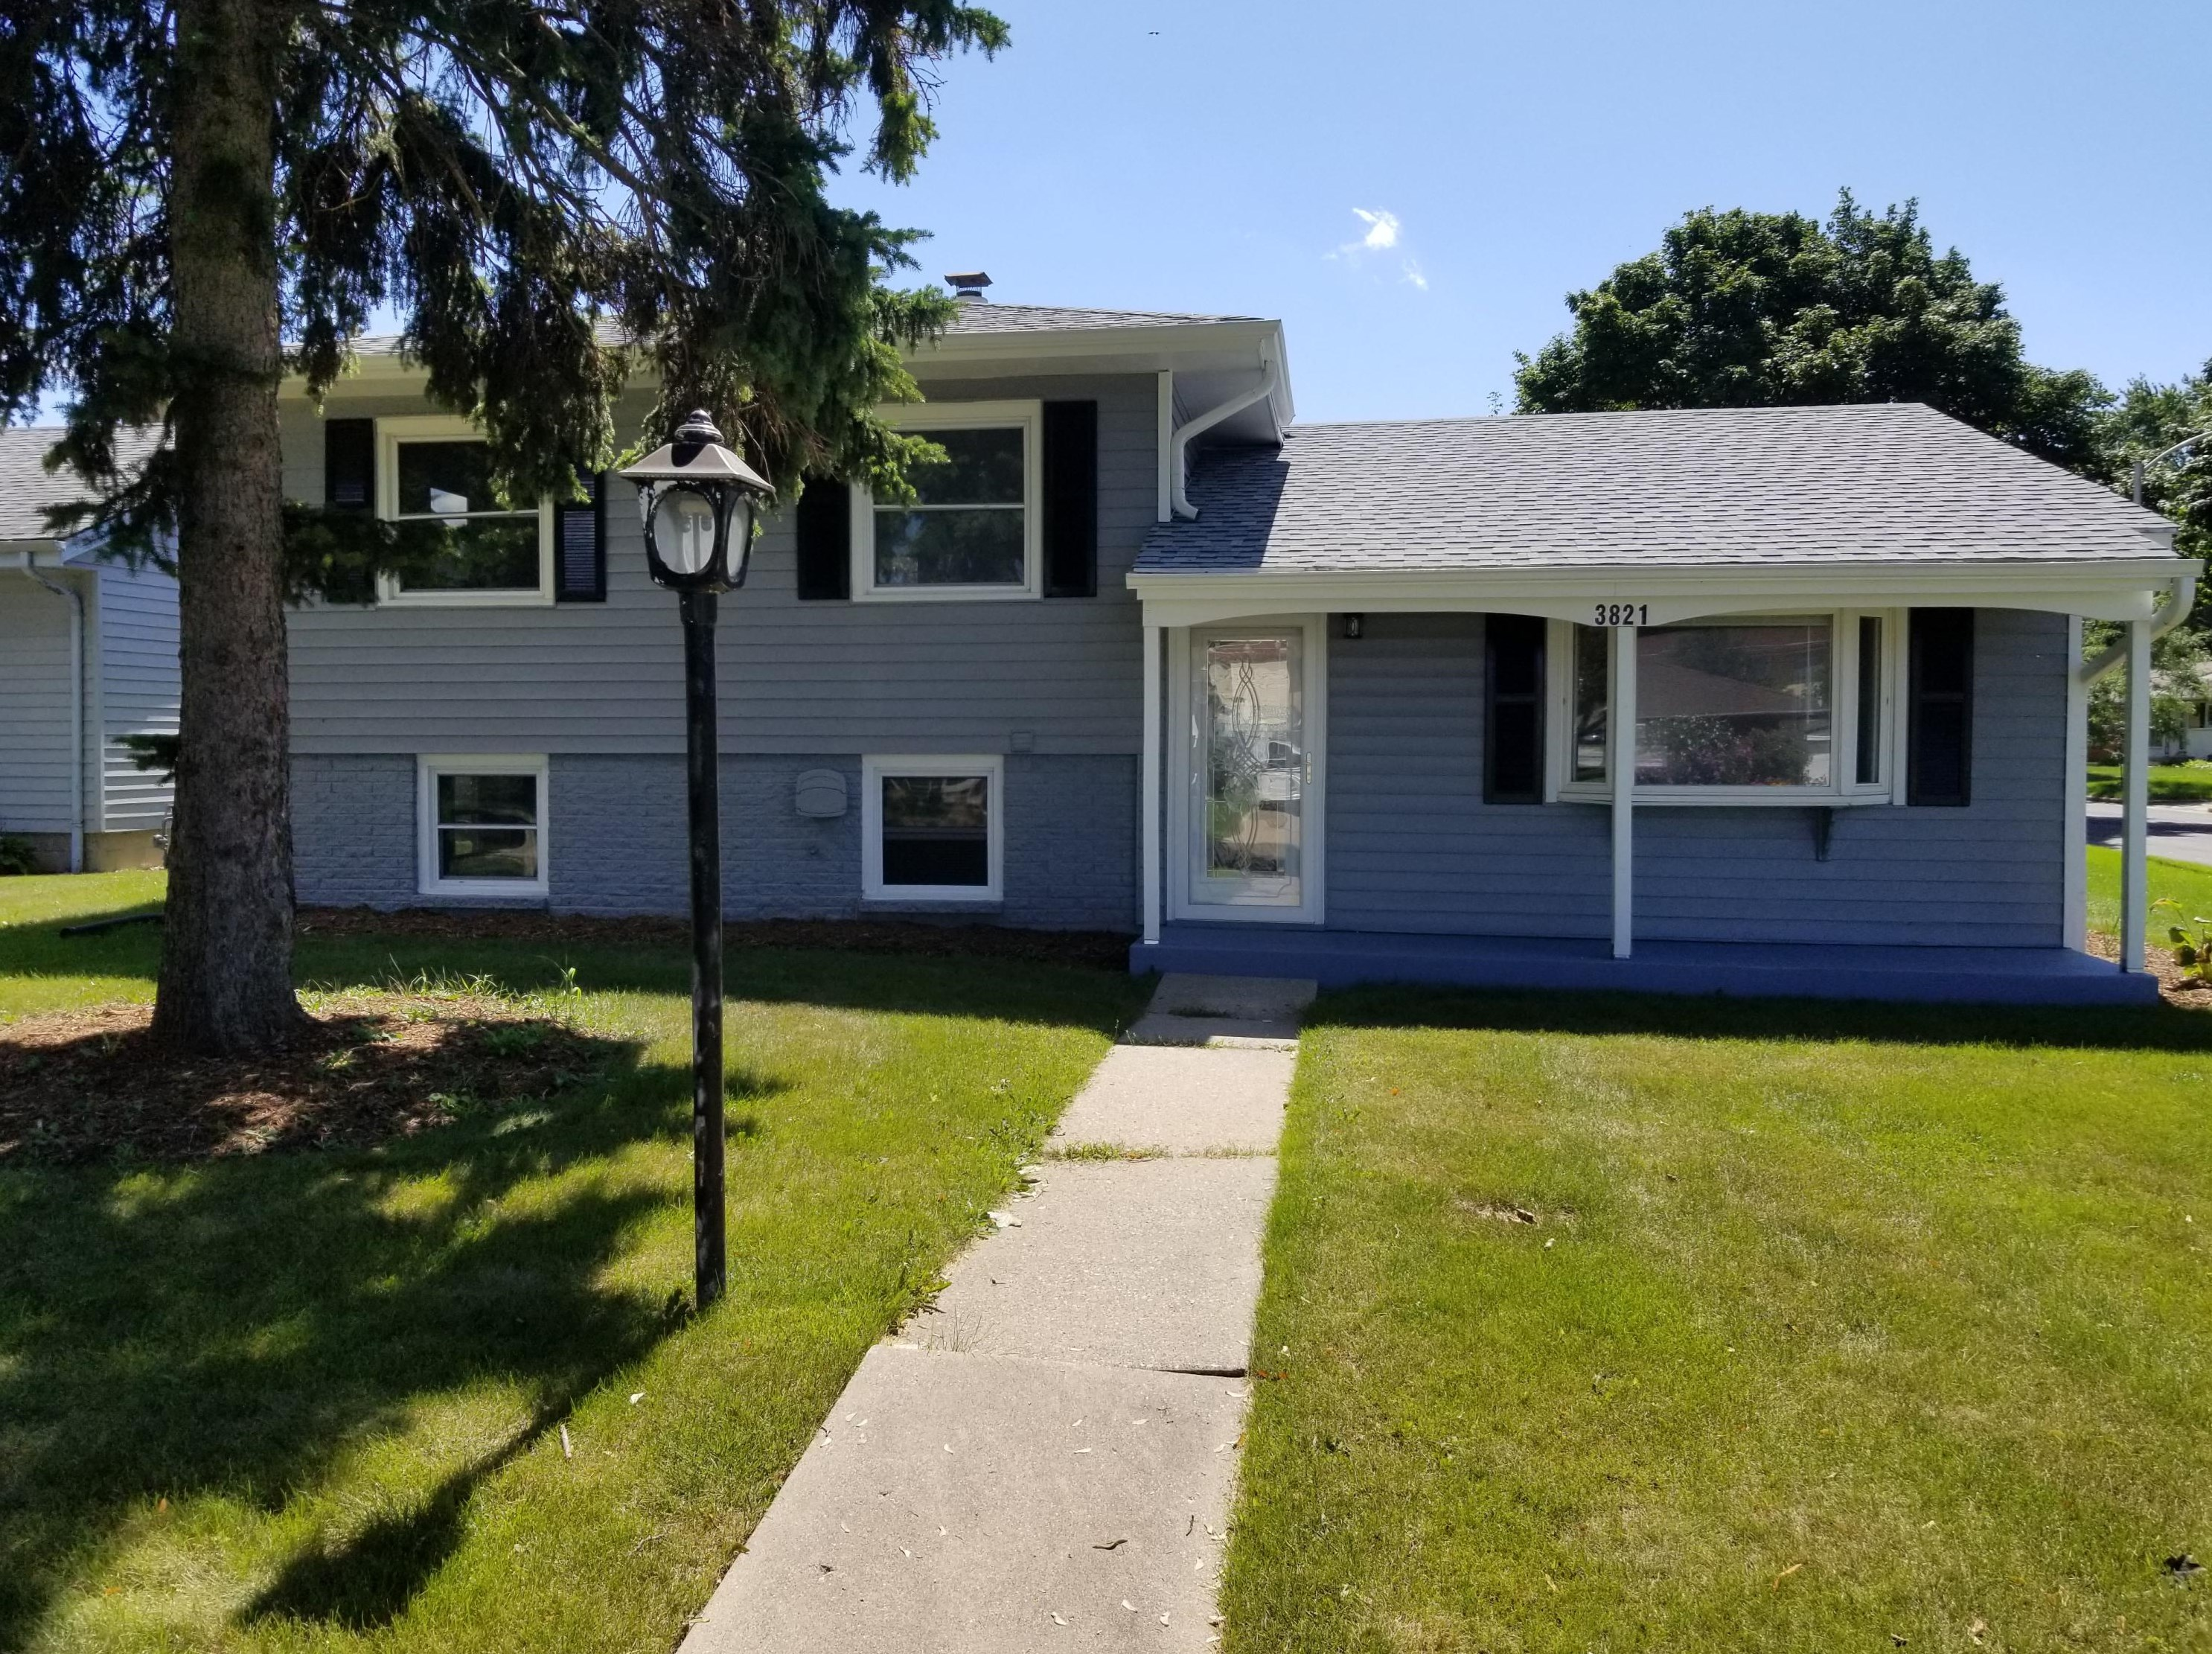 Enjoyable 3821 W Rochelle Ave Milwaukee Wi 53209 Beutiful Home Inspiration Cosmmahrainfo